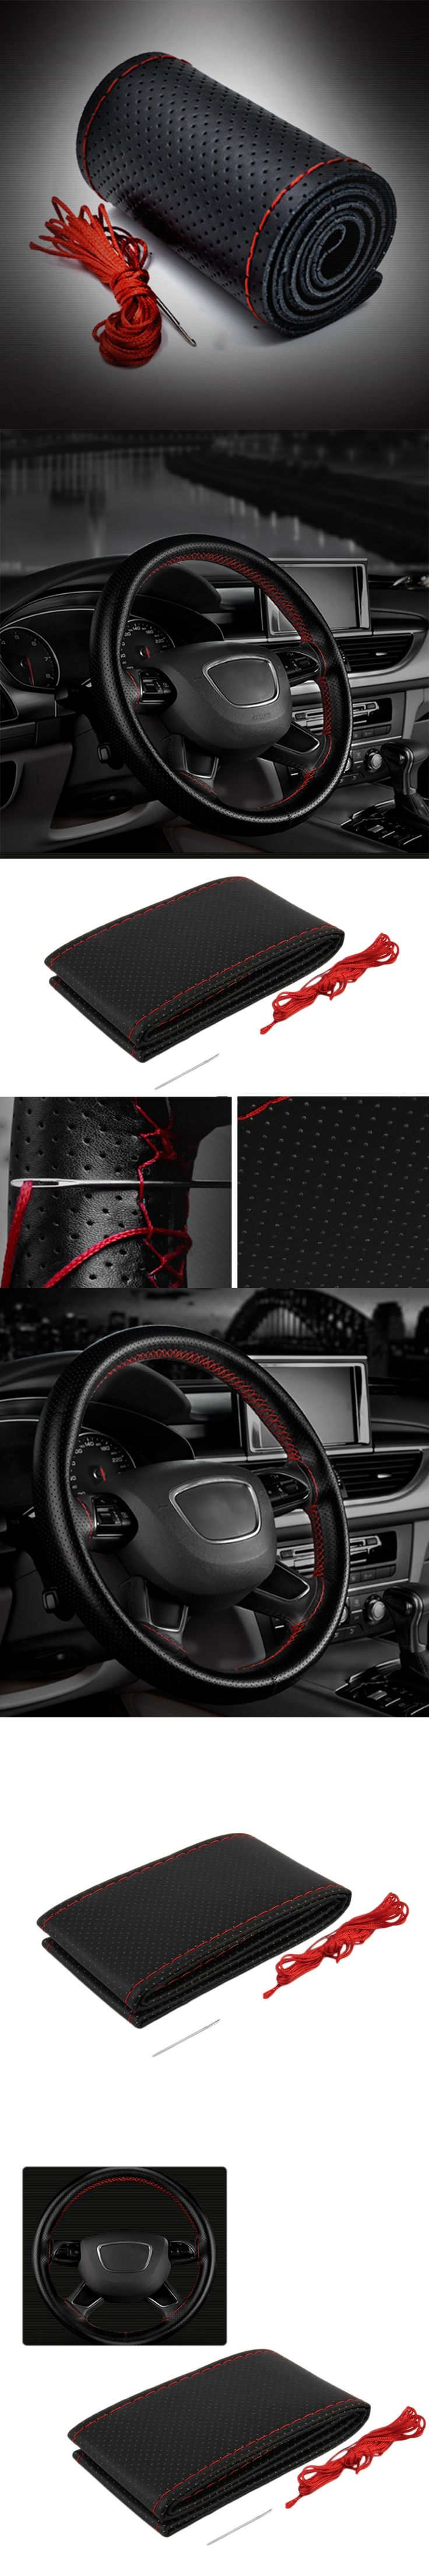 Newest 3 Color DIY Texture Soft Auto Car Steering Wheel Cover With Needles And Thread Artificial Leather Car Covers Suite